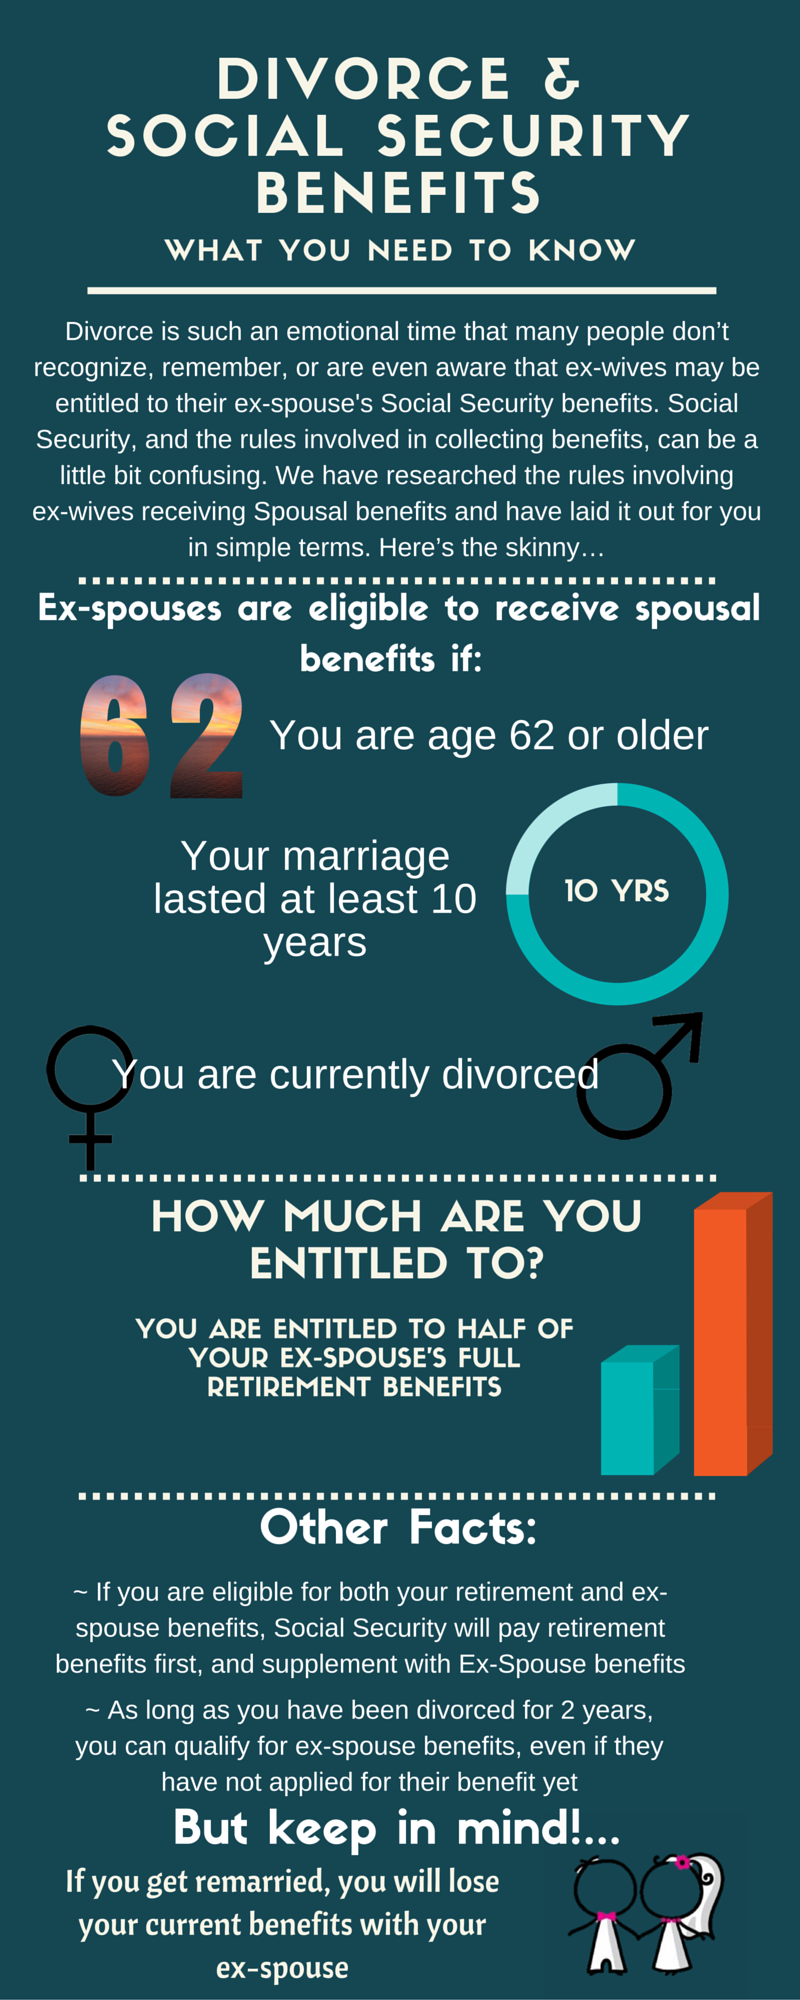 Divorce-Social-Security-Benefits